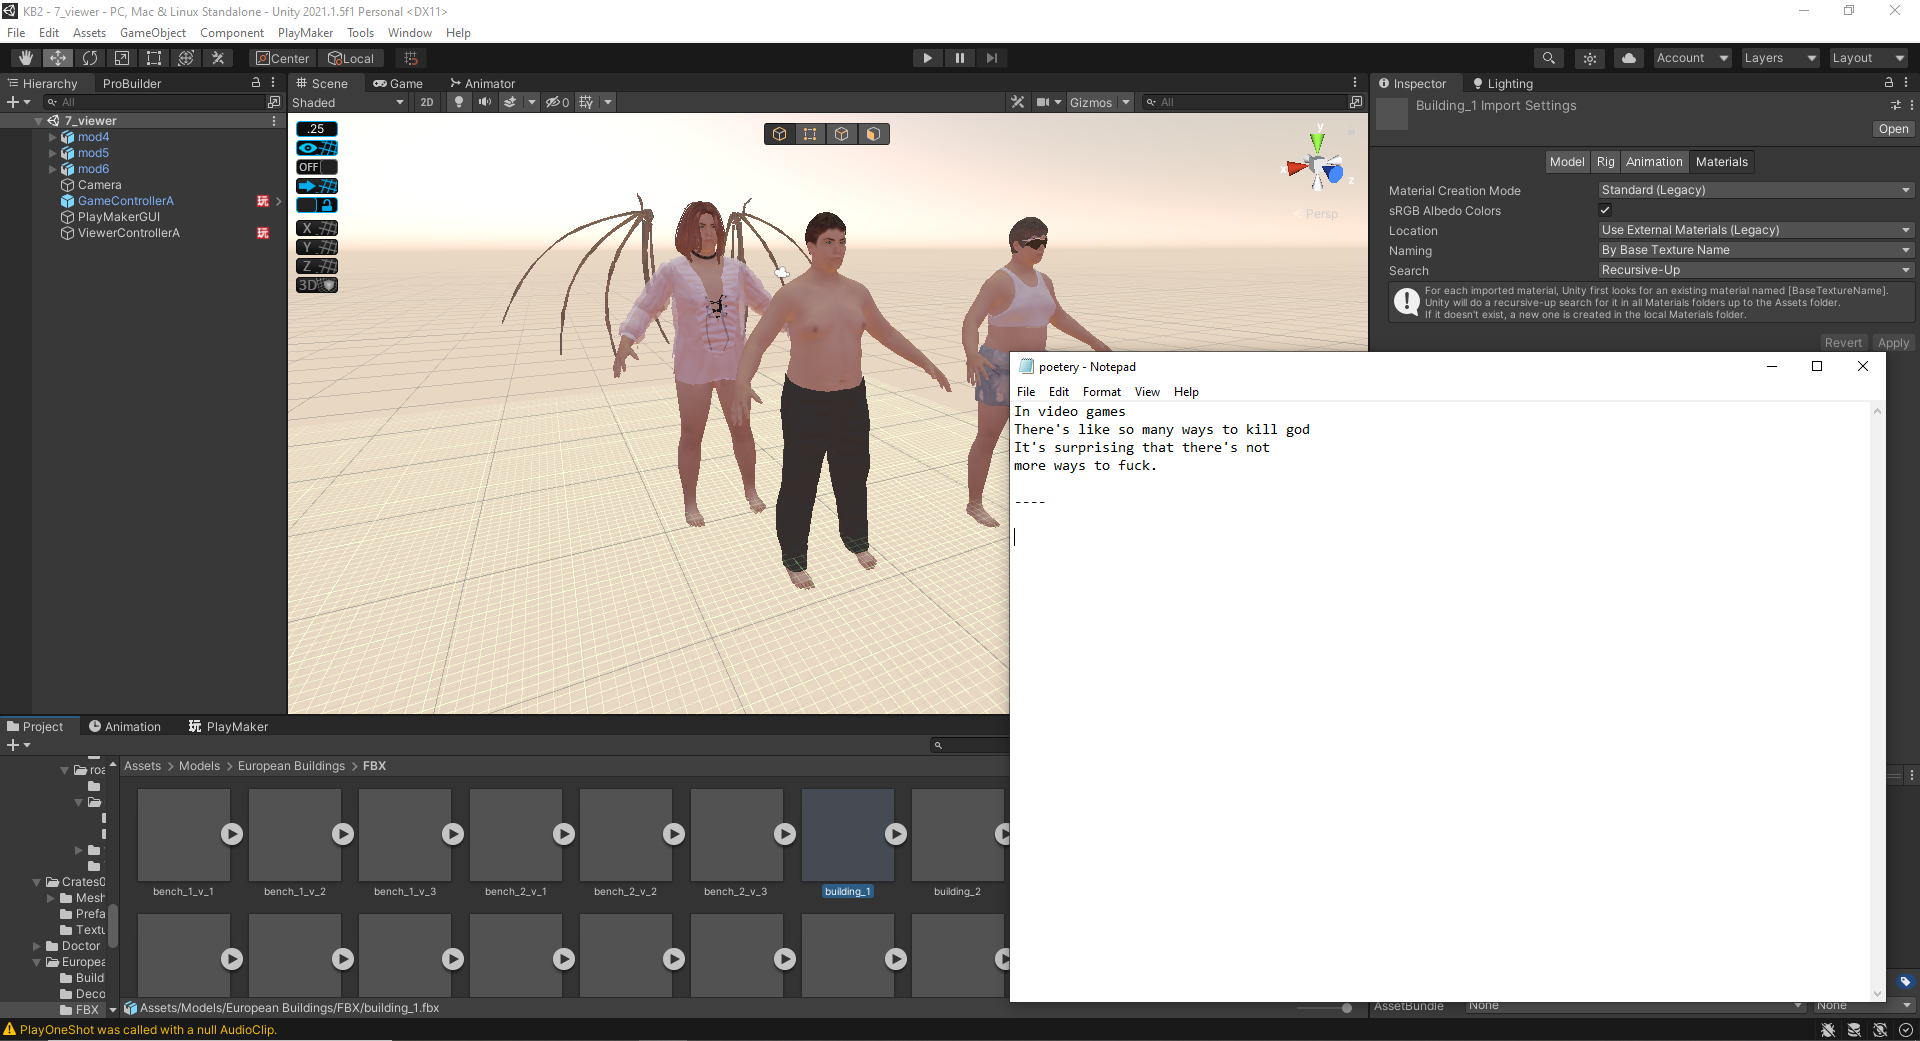 A screenshot of three computer-generated humans and a note in the foreground showing a short poem